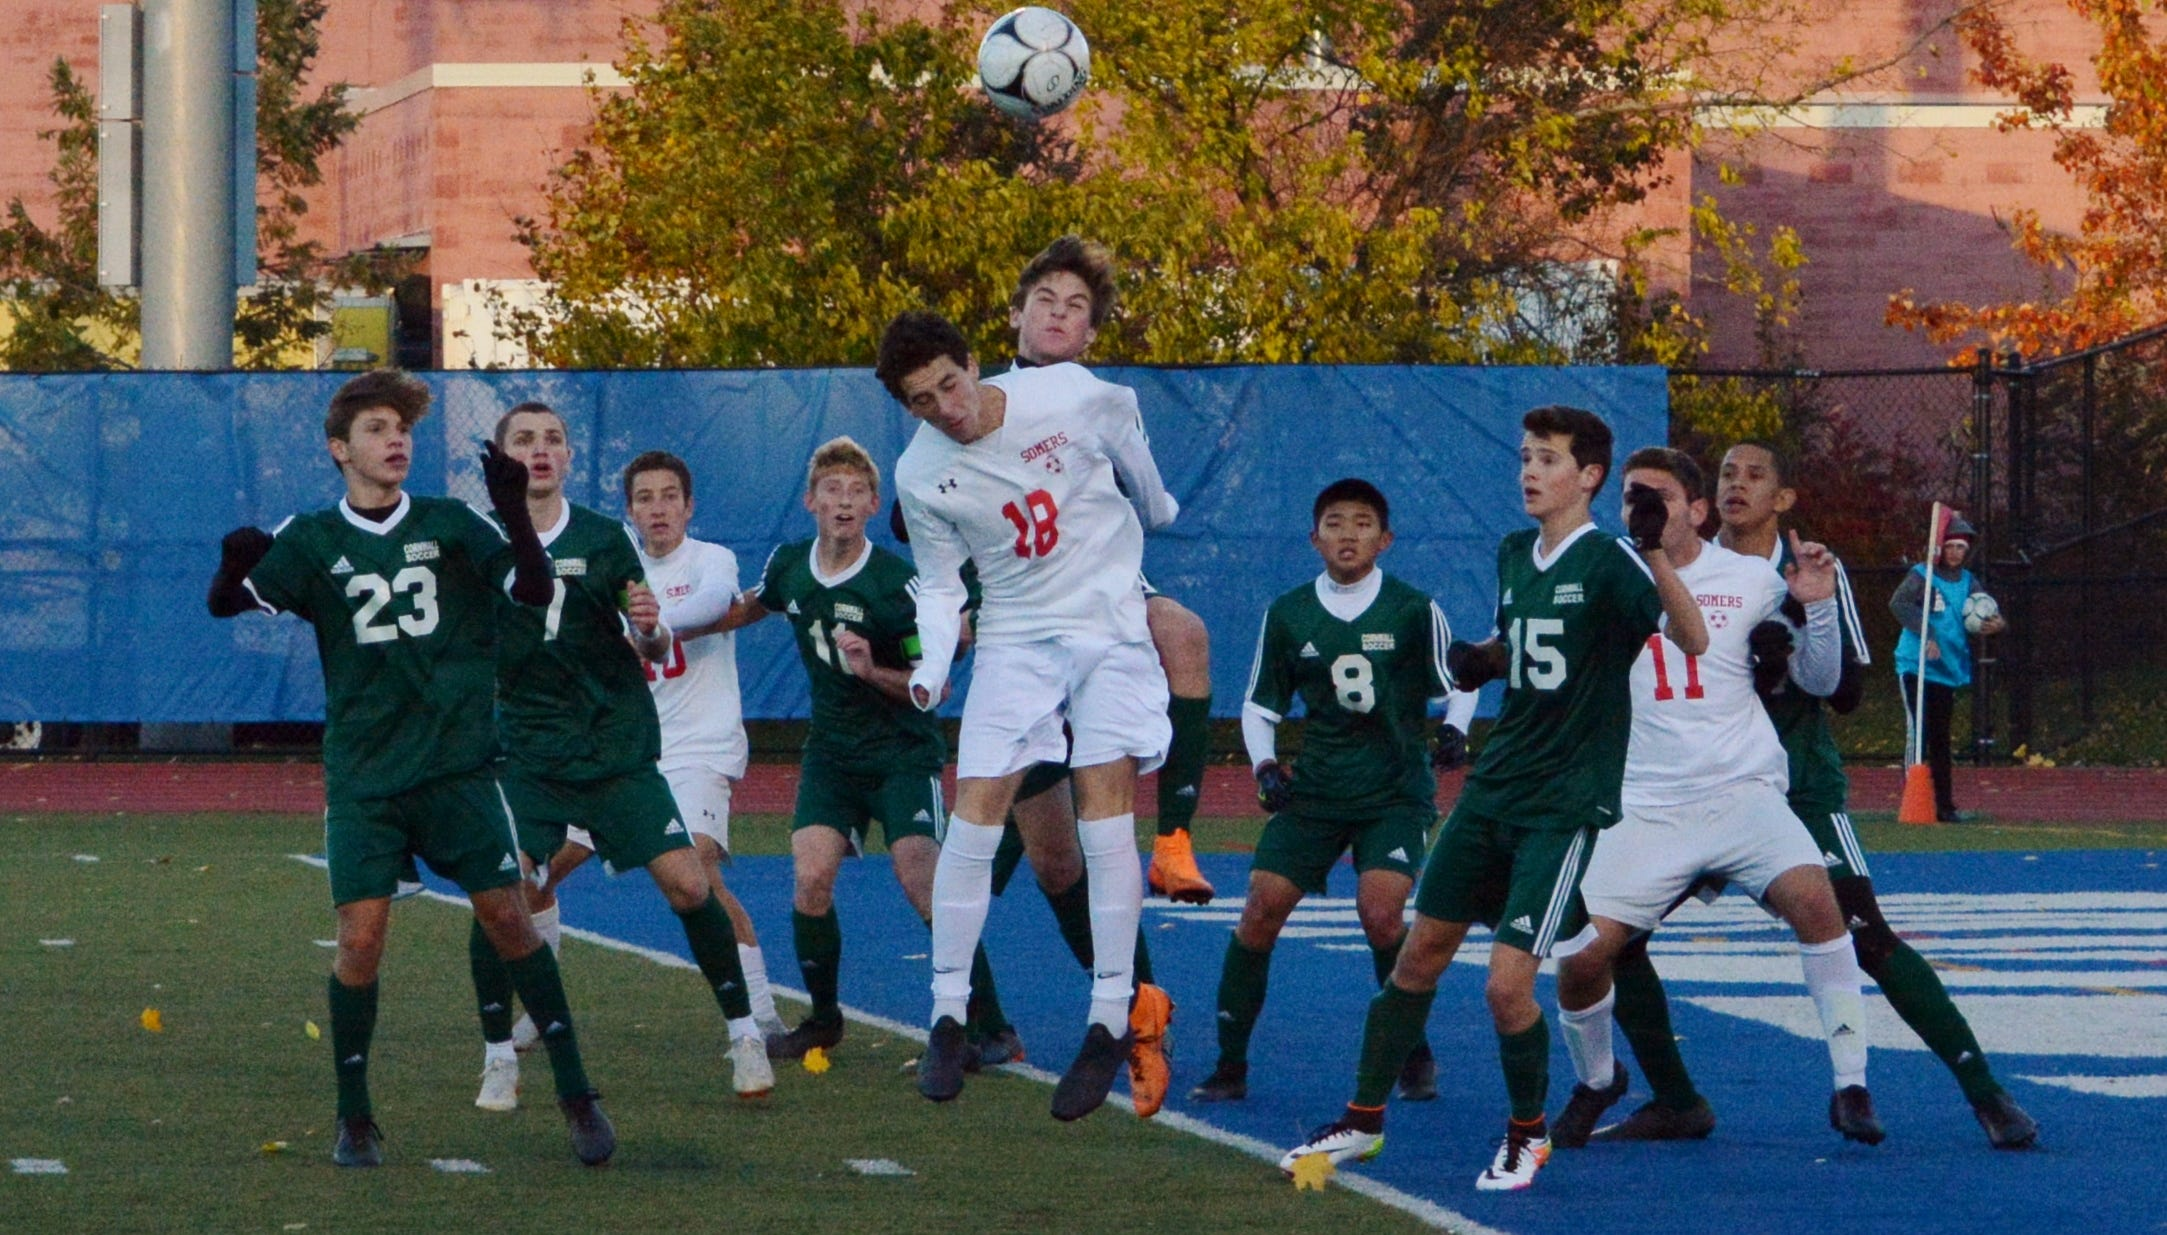 Evan Mazzola wins a ball off a throw in during the first half on Saturday. He later set up the first Somers goal.